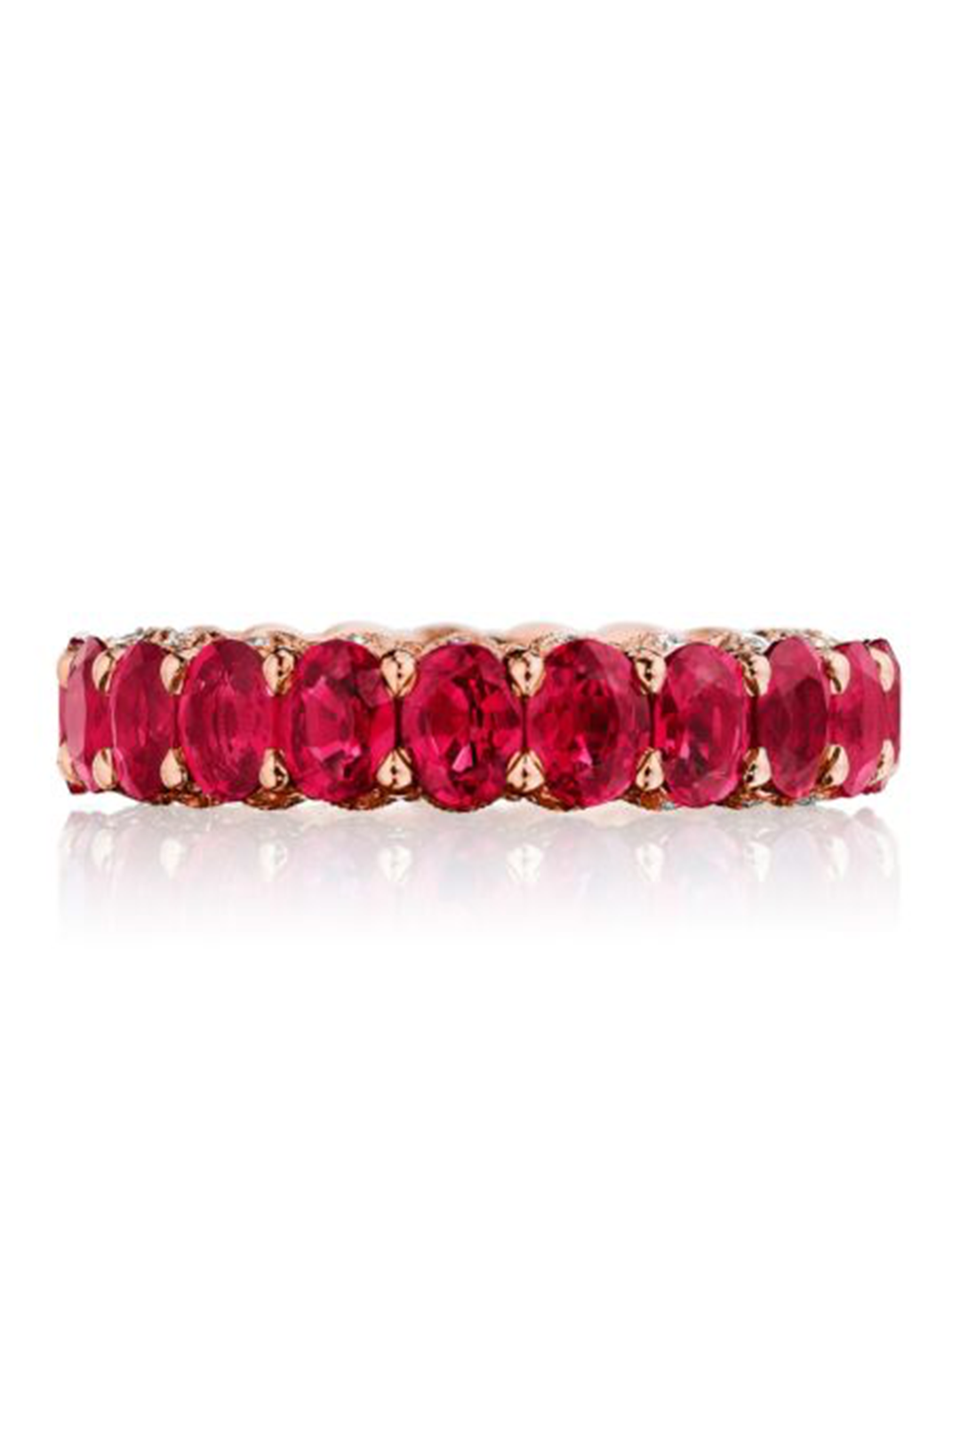 "<p>There are no rules saying you need a traditional ring with a center stone. Sometimes a band packs just as much of a punch on its own, and an engagement band is set up to layer beautifully with your wedding one. Pick a unique shape of stone—like these oval rubies—for a real statement piece. <br></p><p><em>RoyalT in 18kt Rose Gold, $12,990, <a href=""https://nam03.safelinks.protection.outlook.com/?url=http%3A%2F%2Fwww.Tacori.com&data=02%7C01%7Csherry%40tacori.com%7C4afbe019f95a4ad3ad7908d740f94faa%7Cb0f59a73578343f0afbe5dda3a736e9f%7C1%7C0%7C637049311861135266&sdata=yS%2FDOC0h%2FSoTY622nYPPD8ND2er8LlS2%2Fuj5O6z56cM%3D&reserved=0"" rel=""nofollow noopener"" target=""_blank"" data-ylk=""slk:tacori.com"" class=""link rapid-noclick-resp"">tacori.com</a>.</em></p><p> <a class=""link rapid-noclick-resp"" href=""https://nam03.safelinks.protection.outlook.com/?url=https%3A%2F%2Fwww.tacori.com%2Fht2637pkrb%2F&data=02%7C01%7Csherry%40tacori.com%7C4afbe019f95a4ad3ad7908d740f94faa%7Cb0f59a73578343f0afbe5dda3a736e9f%7C1%7C0%7C637049311861135266&sdata=ZiErCQp7A19dhIaXlHZnM06dmh2k5zjJJwVQToxQ9bc%3D&reserved=0"" rel=""nofollow noopener"" target=""_blank"" data-ylk=""slk:SHOP"">SHOP</a></p>"